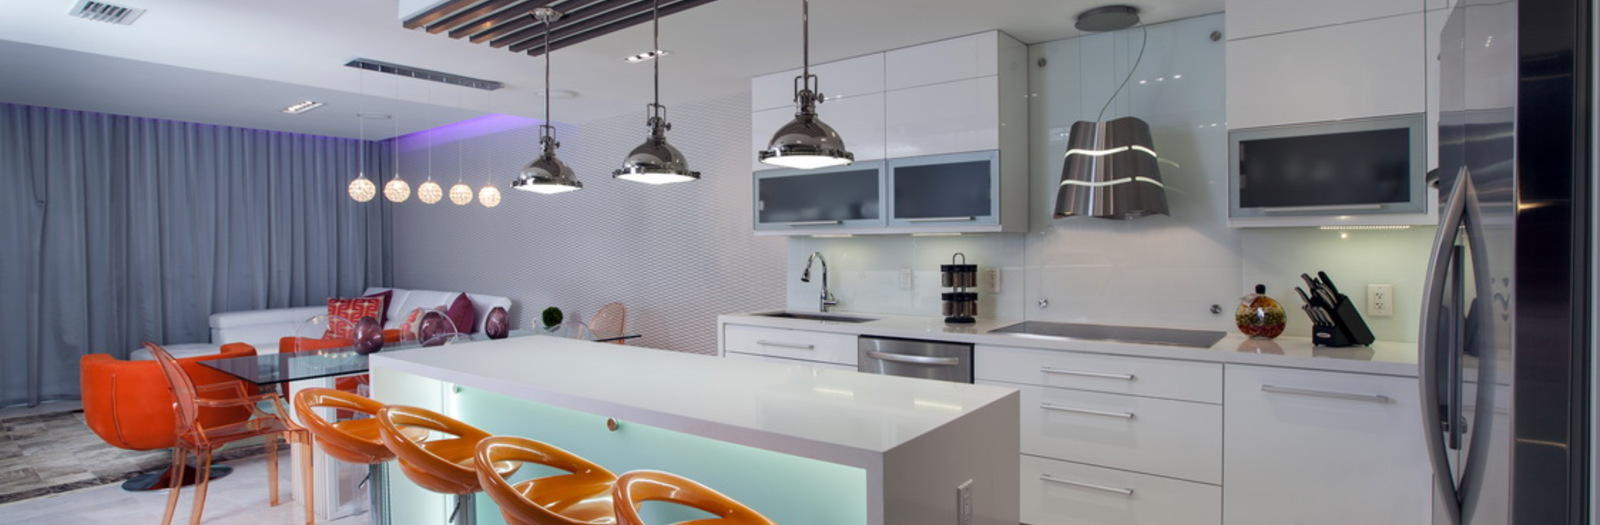 Modern Kitchen with modern style kitchen with white cabinetry and orange barstools